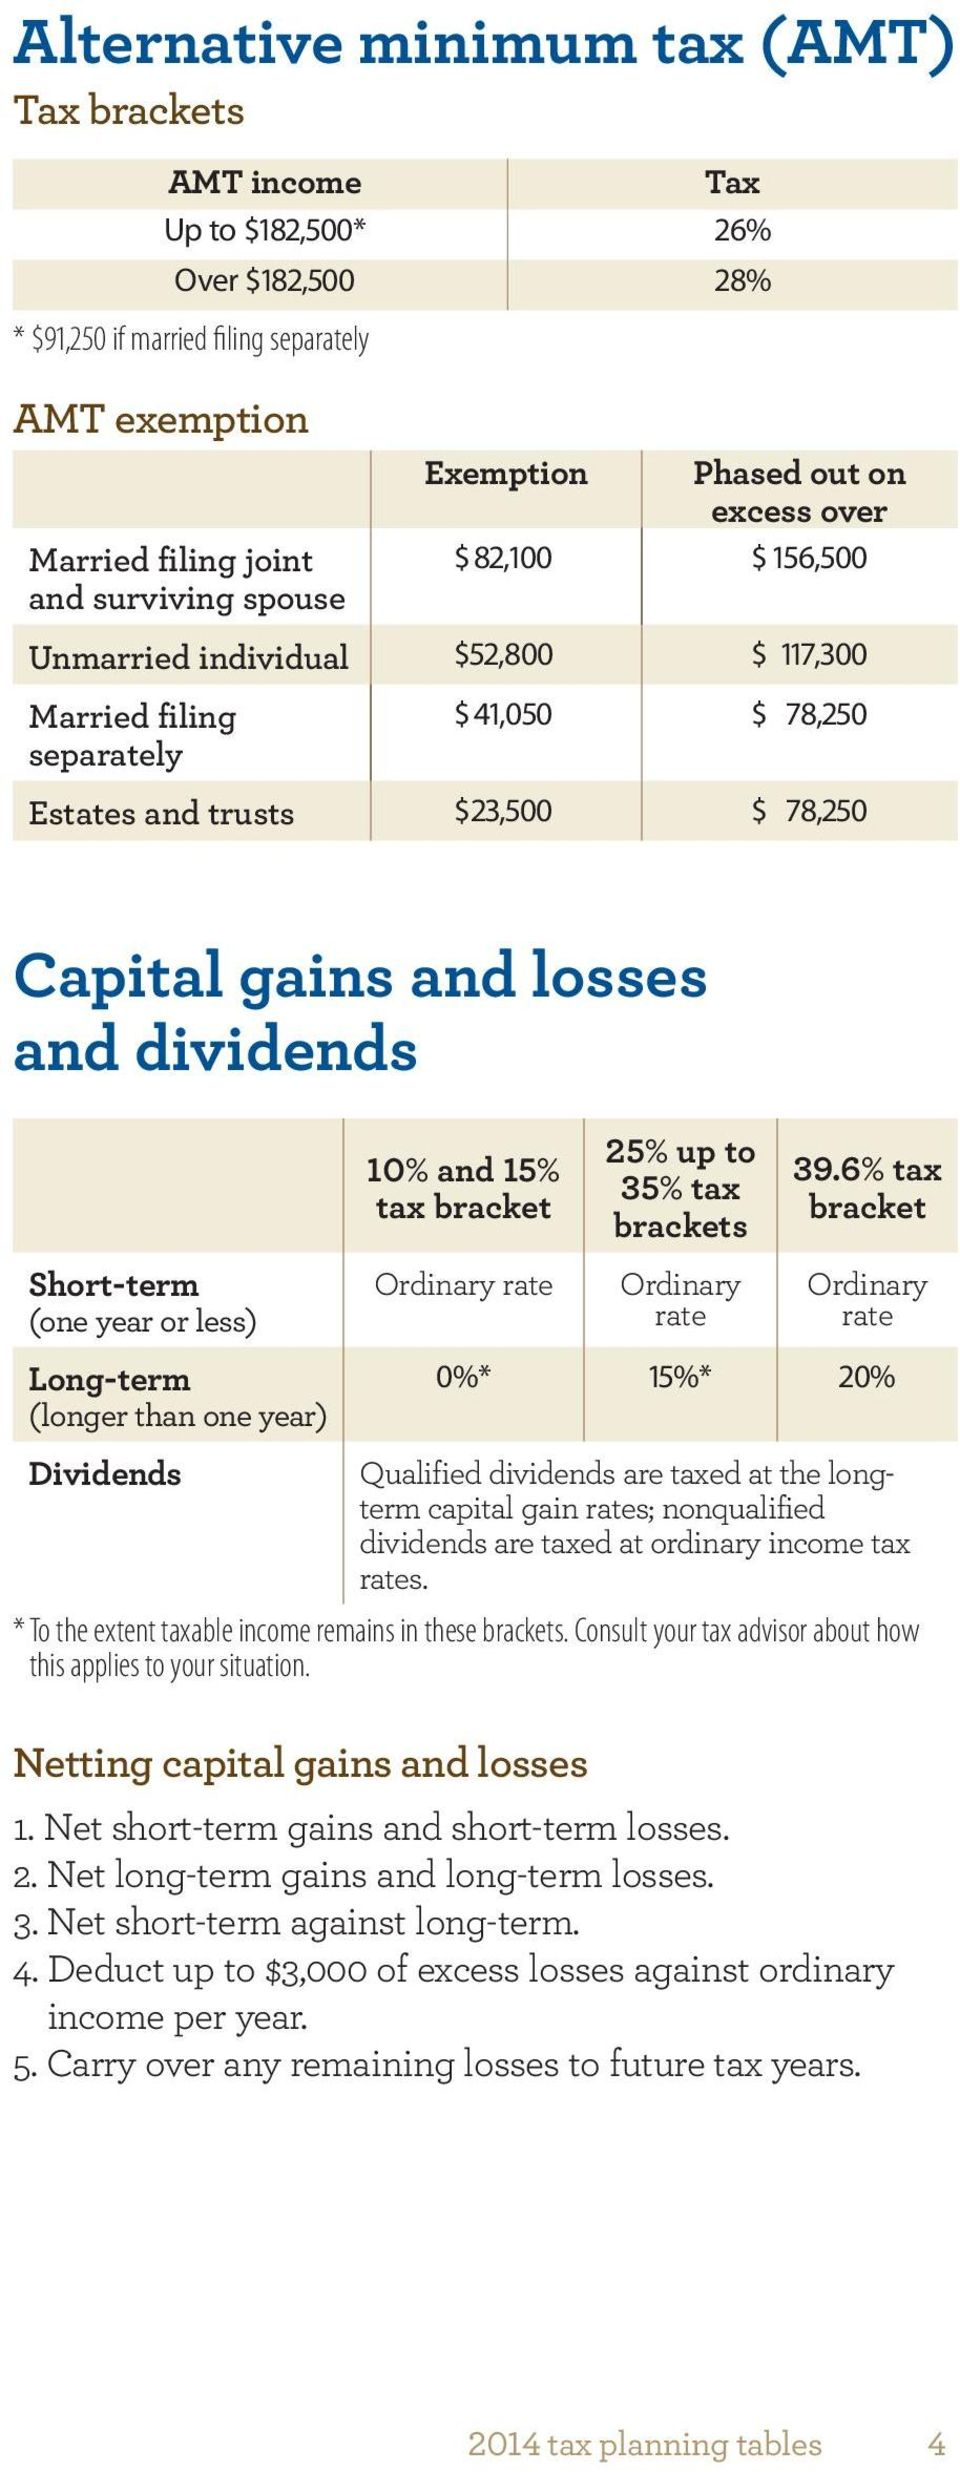 and dividends Short-term (one year or less) Long-term (longer than one year) Dividends 10% and 15% tax bracket Ordinary rate 25% up to 35% tax brackets Ordinary rate 39.